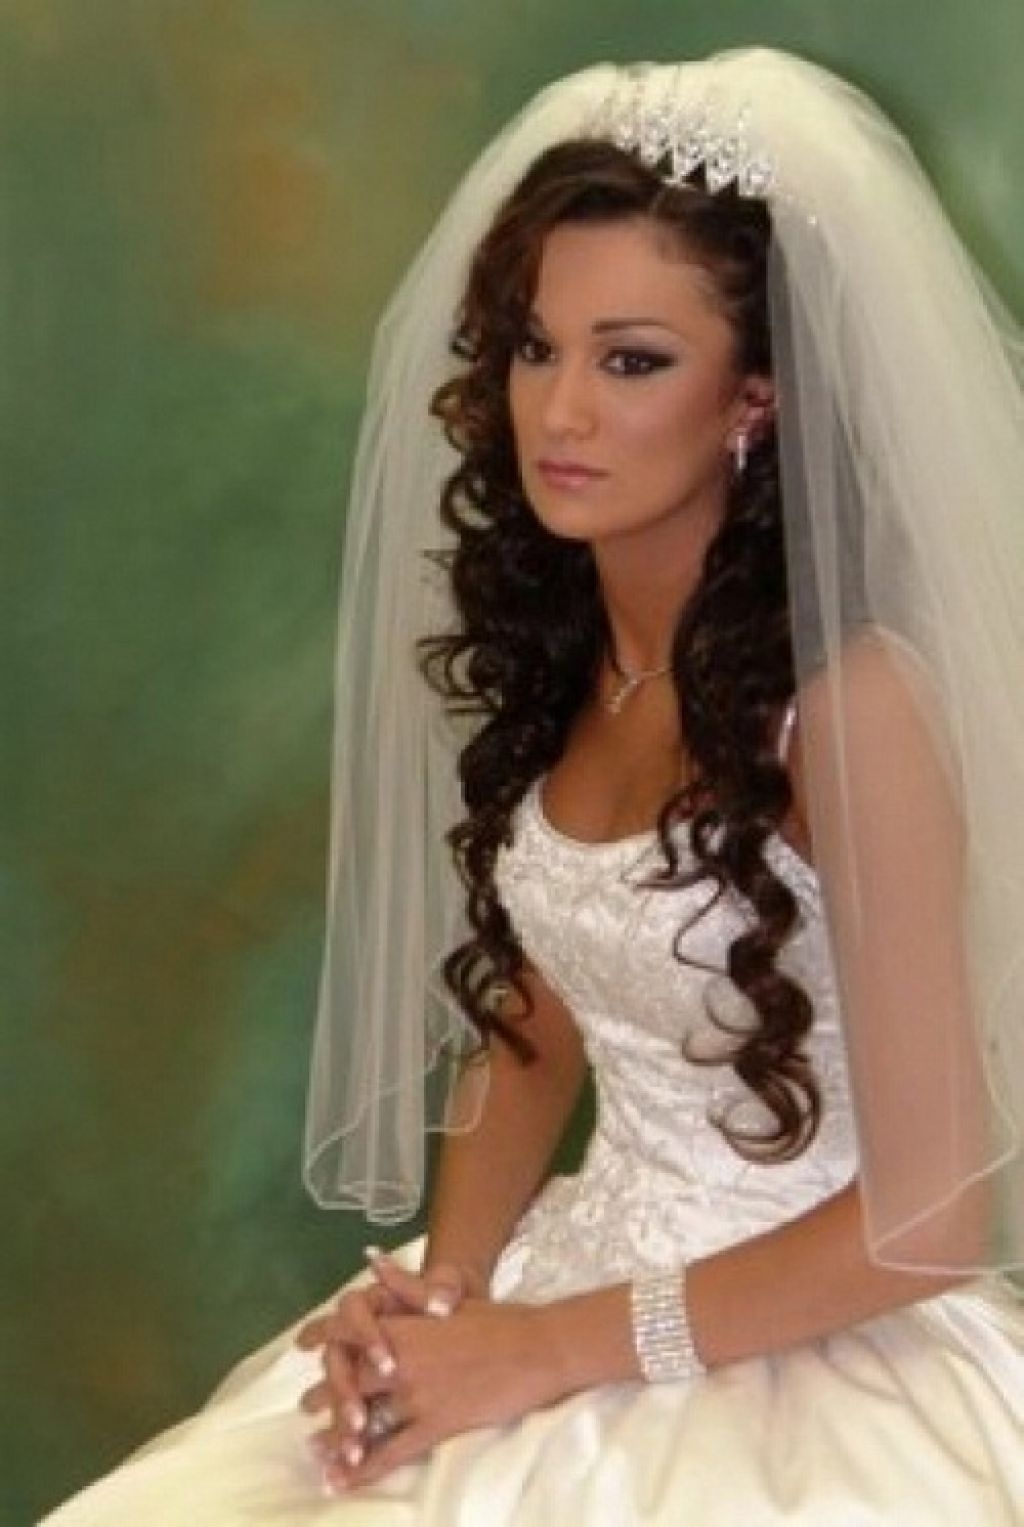 Wedding Hairstyles For Short Hair With Veil – Hairstyle For Women & Man In Trendy Wedding Hairstyles For Long Straight Hair With Veil (View 5 of 15)